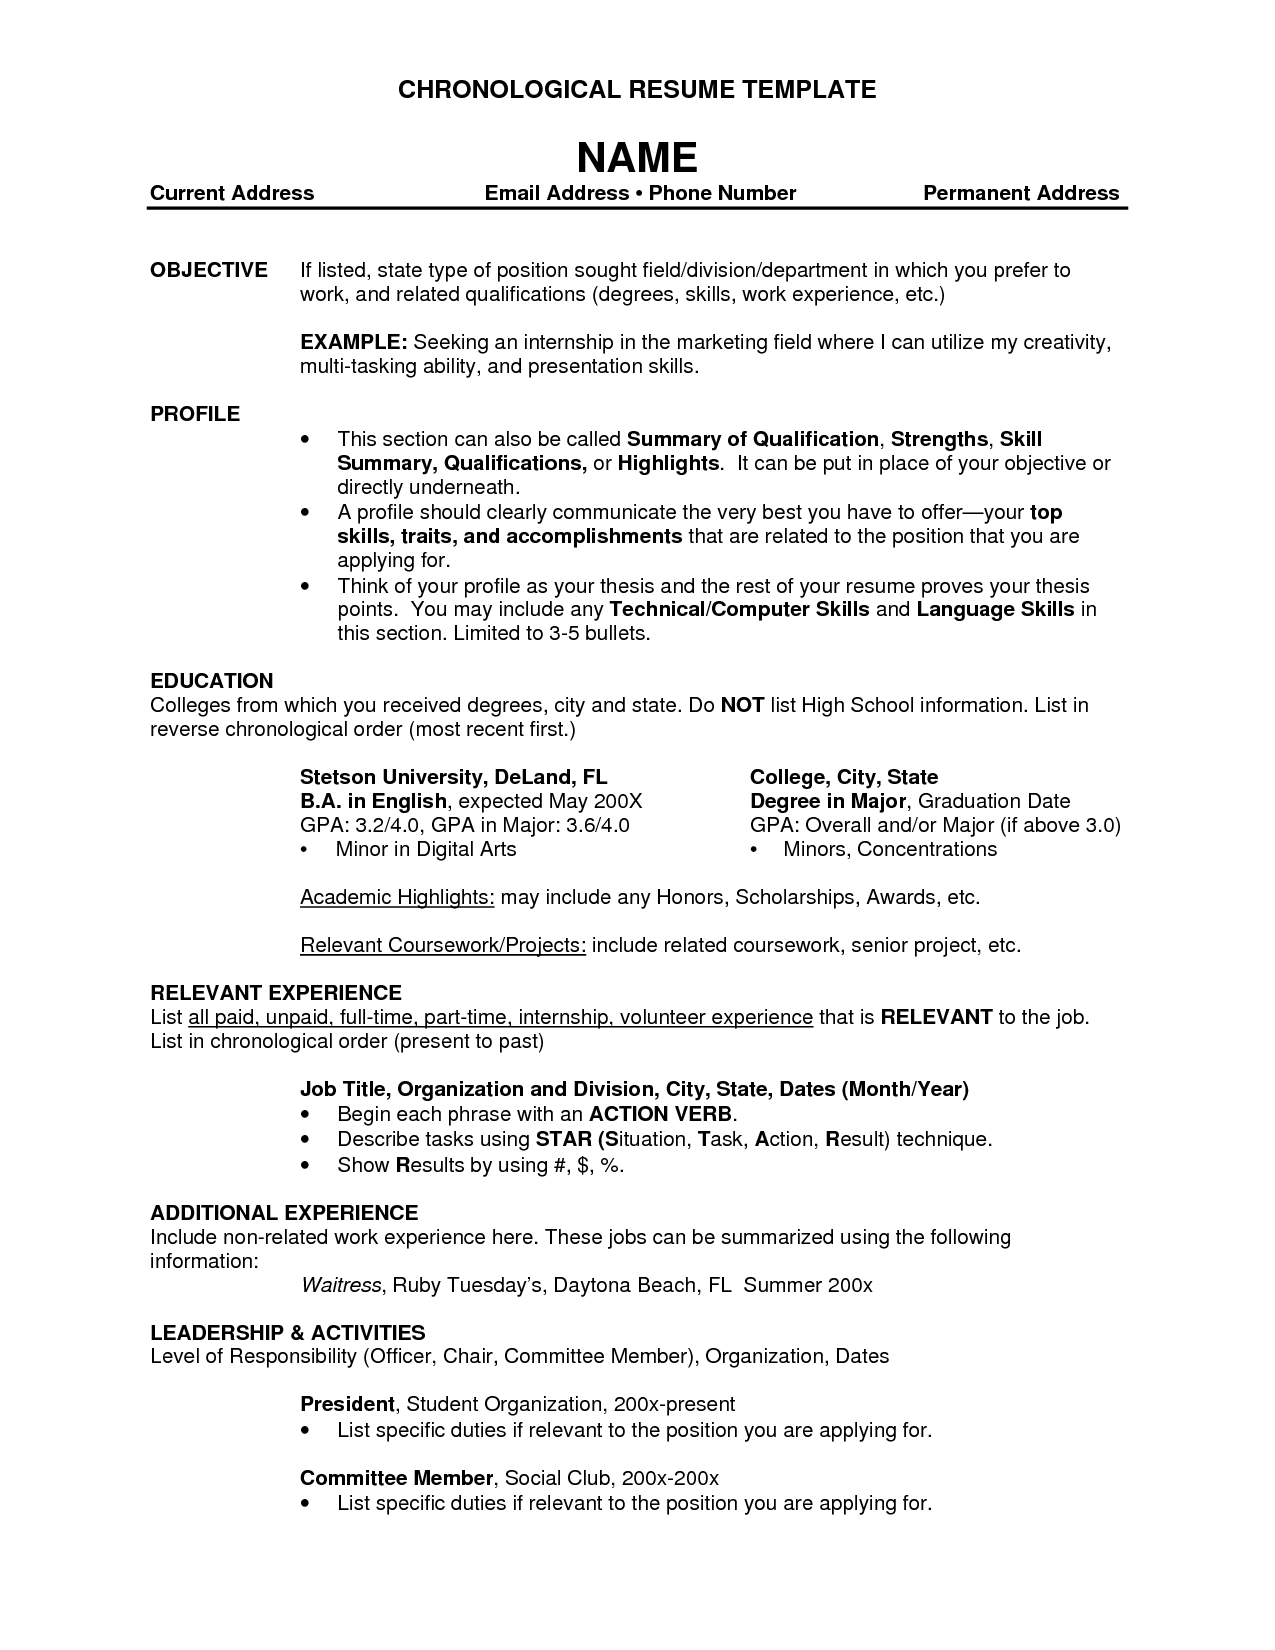 Job Resume Topics Pega Architect Sample Nuclear Power Best Staff Accountant  Example Livecareer Title Essay Cover